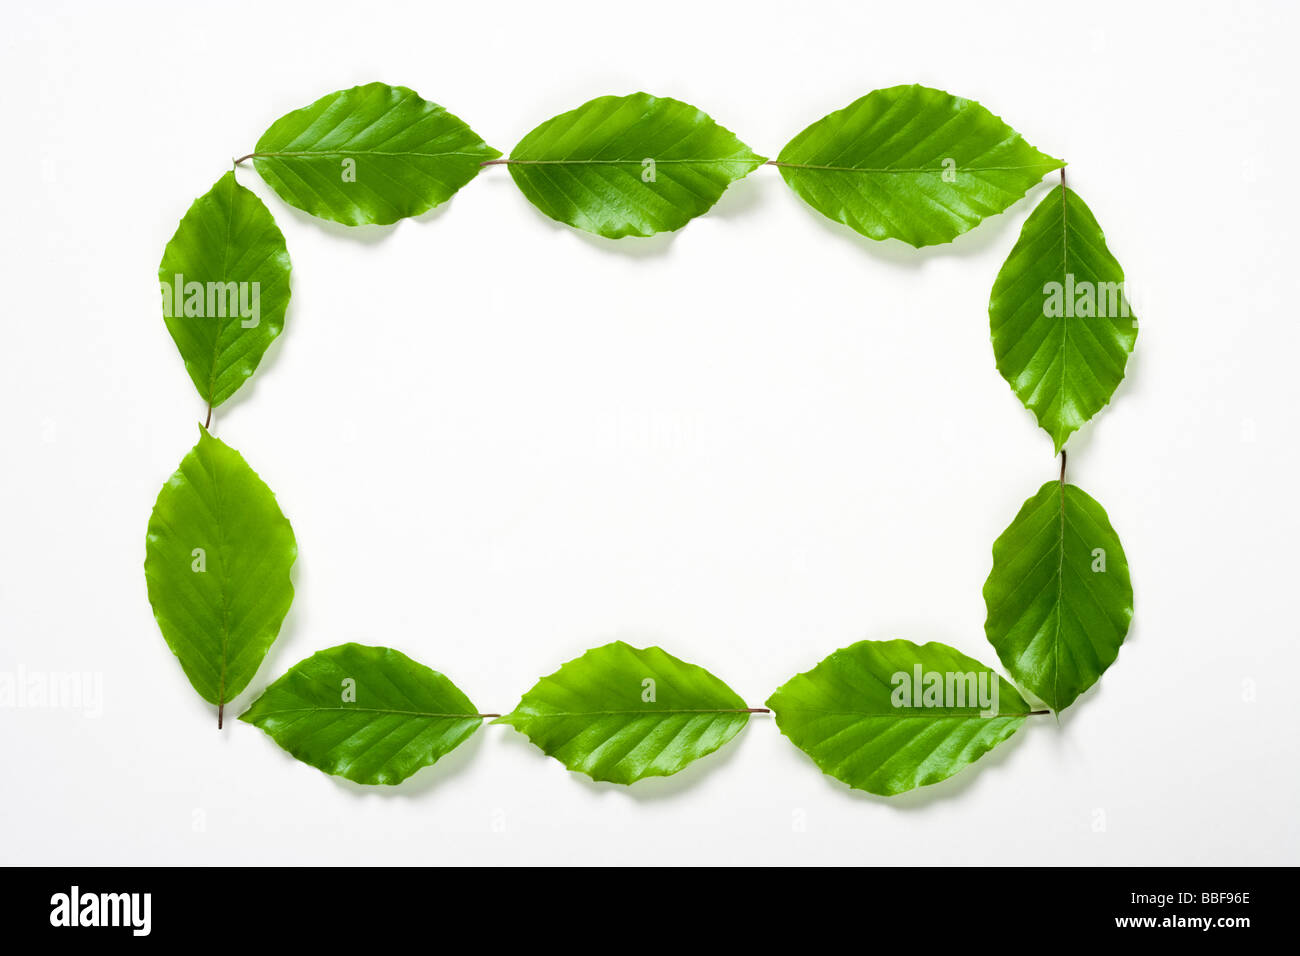 Rectangle of leaves. Beech leaves. - Stock Image